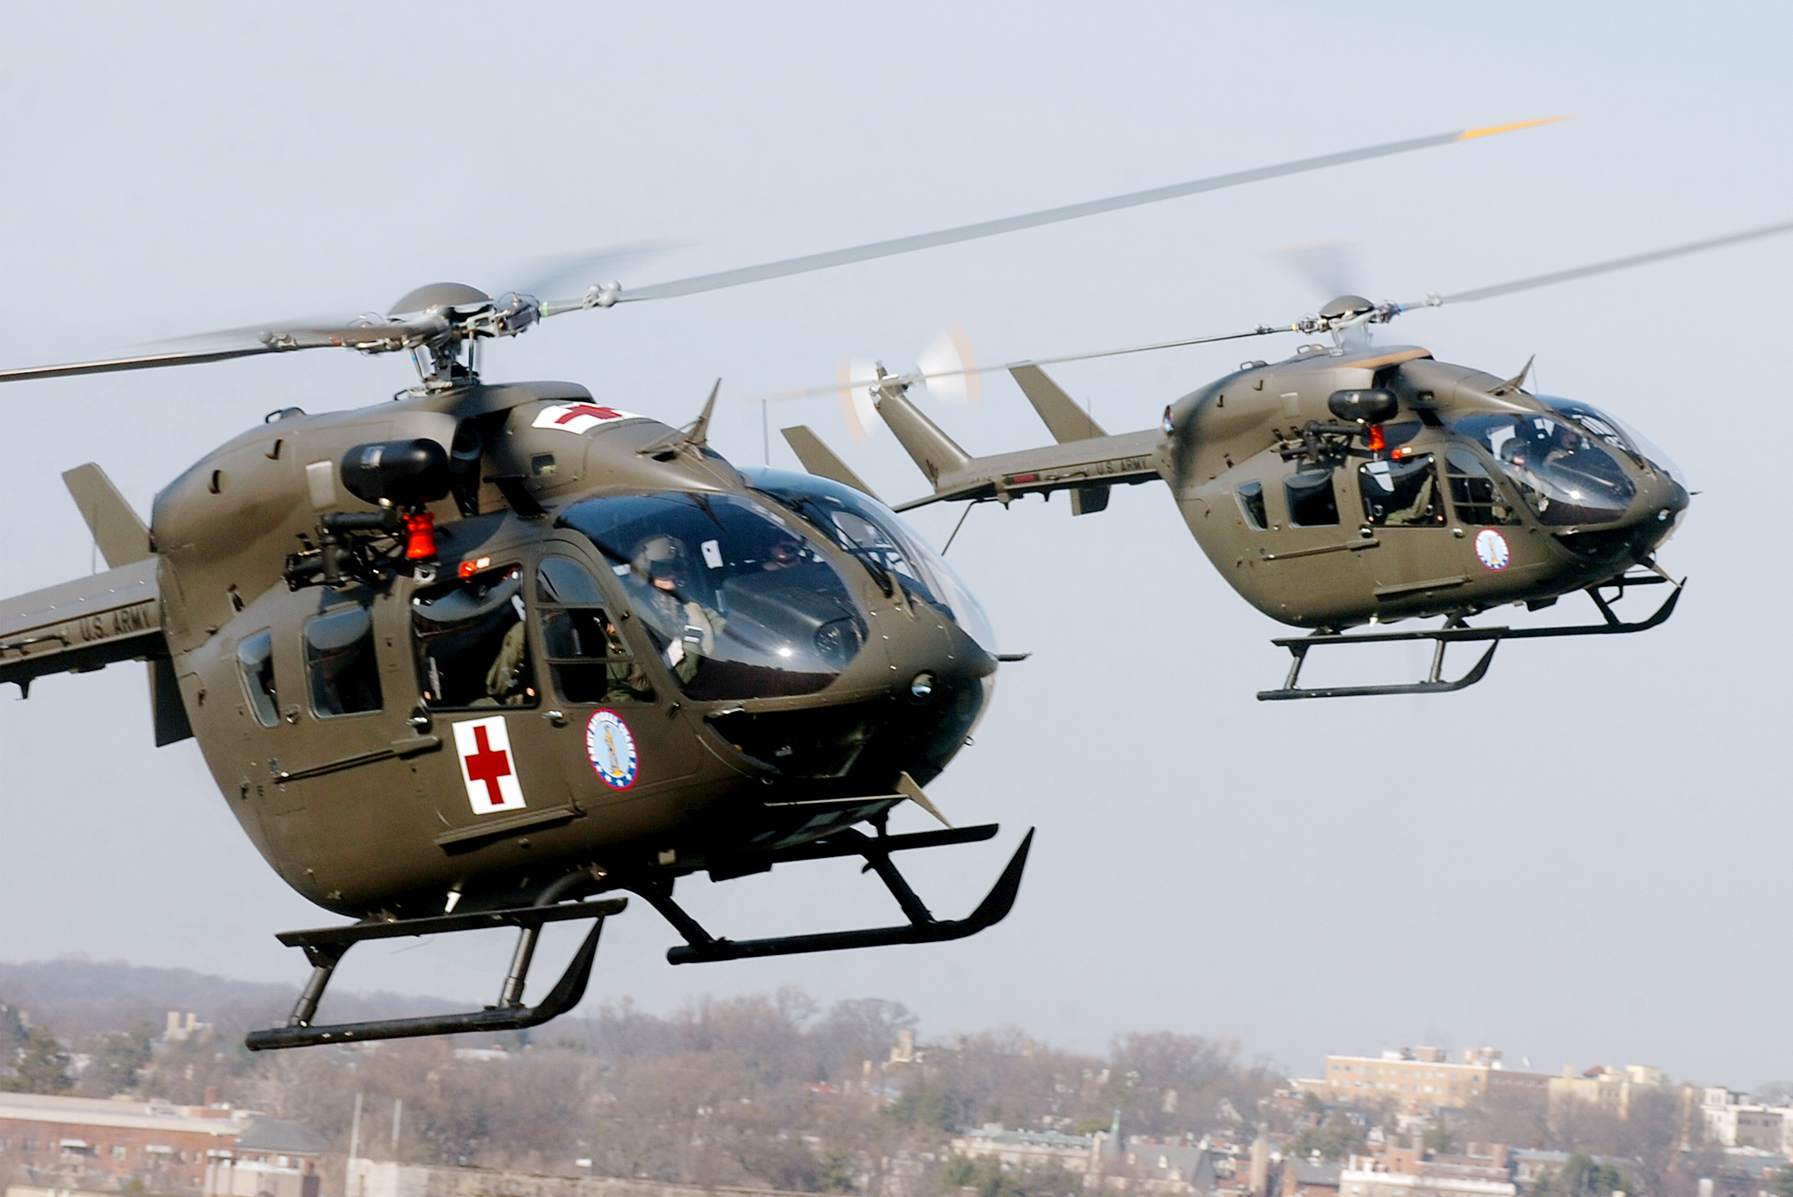 ​Вертолёты UH-72A Lacota http://commons.wikimedia.org/wiki/File:121st_Medical_Company_fly_UH-72A_Lakota_helicopters.jpg?uselang=ru - Таиланд планирует заказать вторую партию вертолётов UH-72A | Военно-исторический портал Warspot.ru